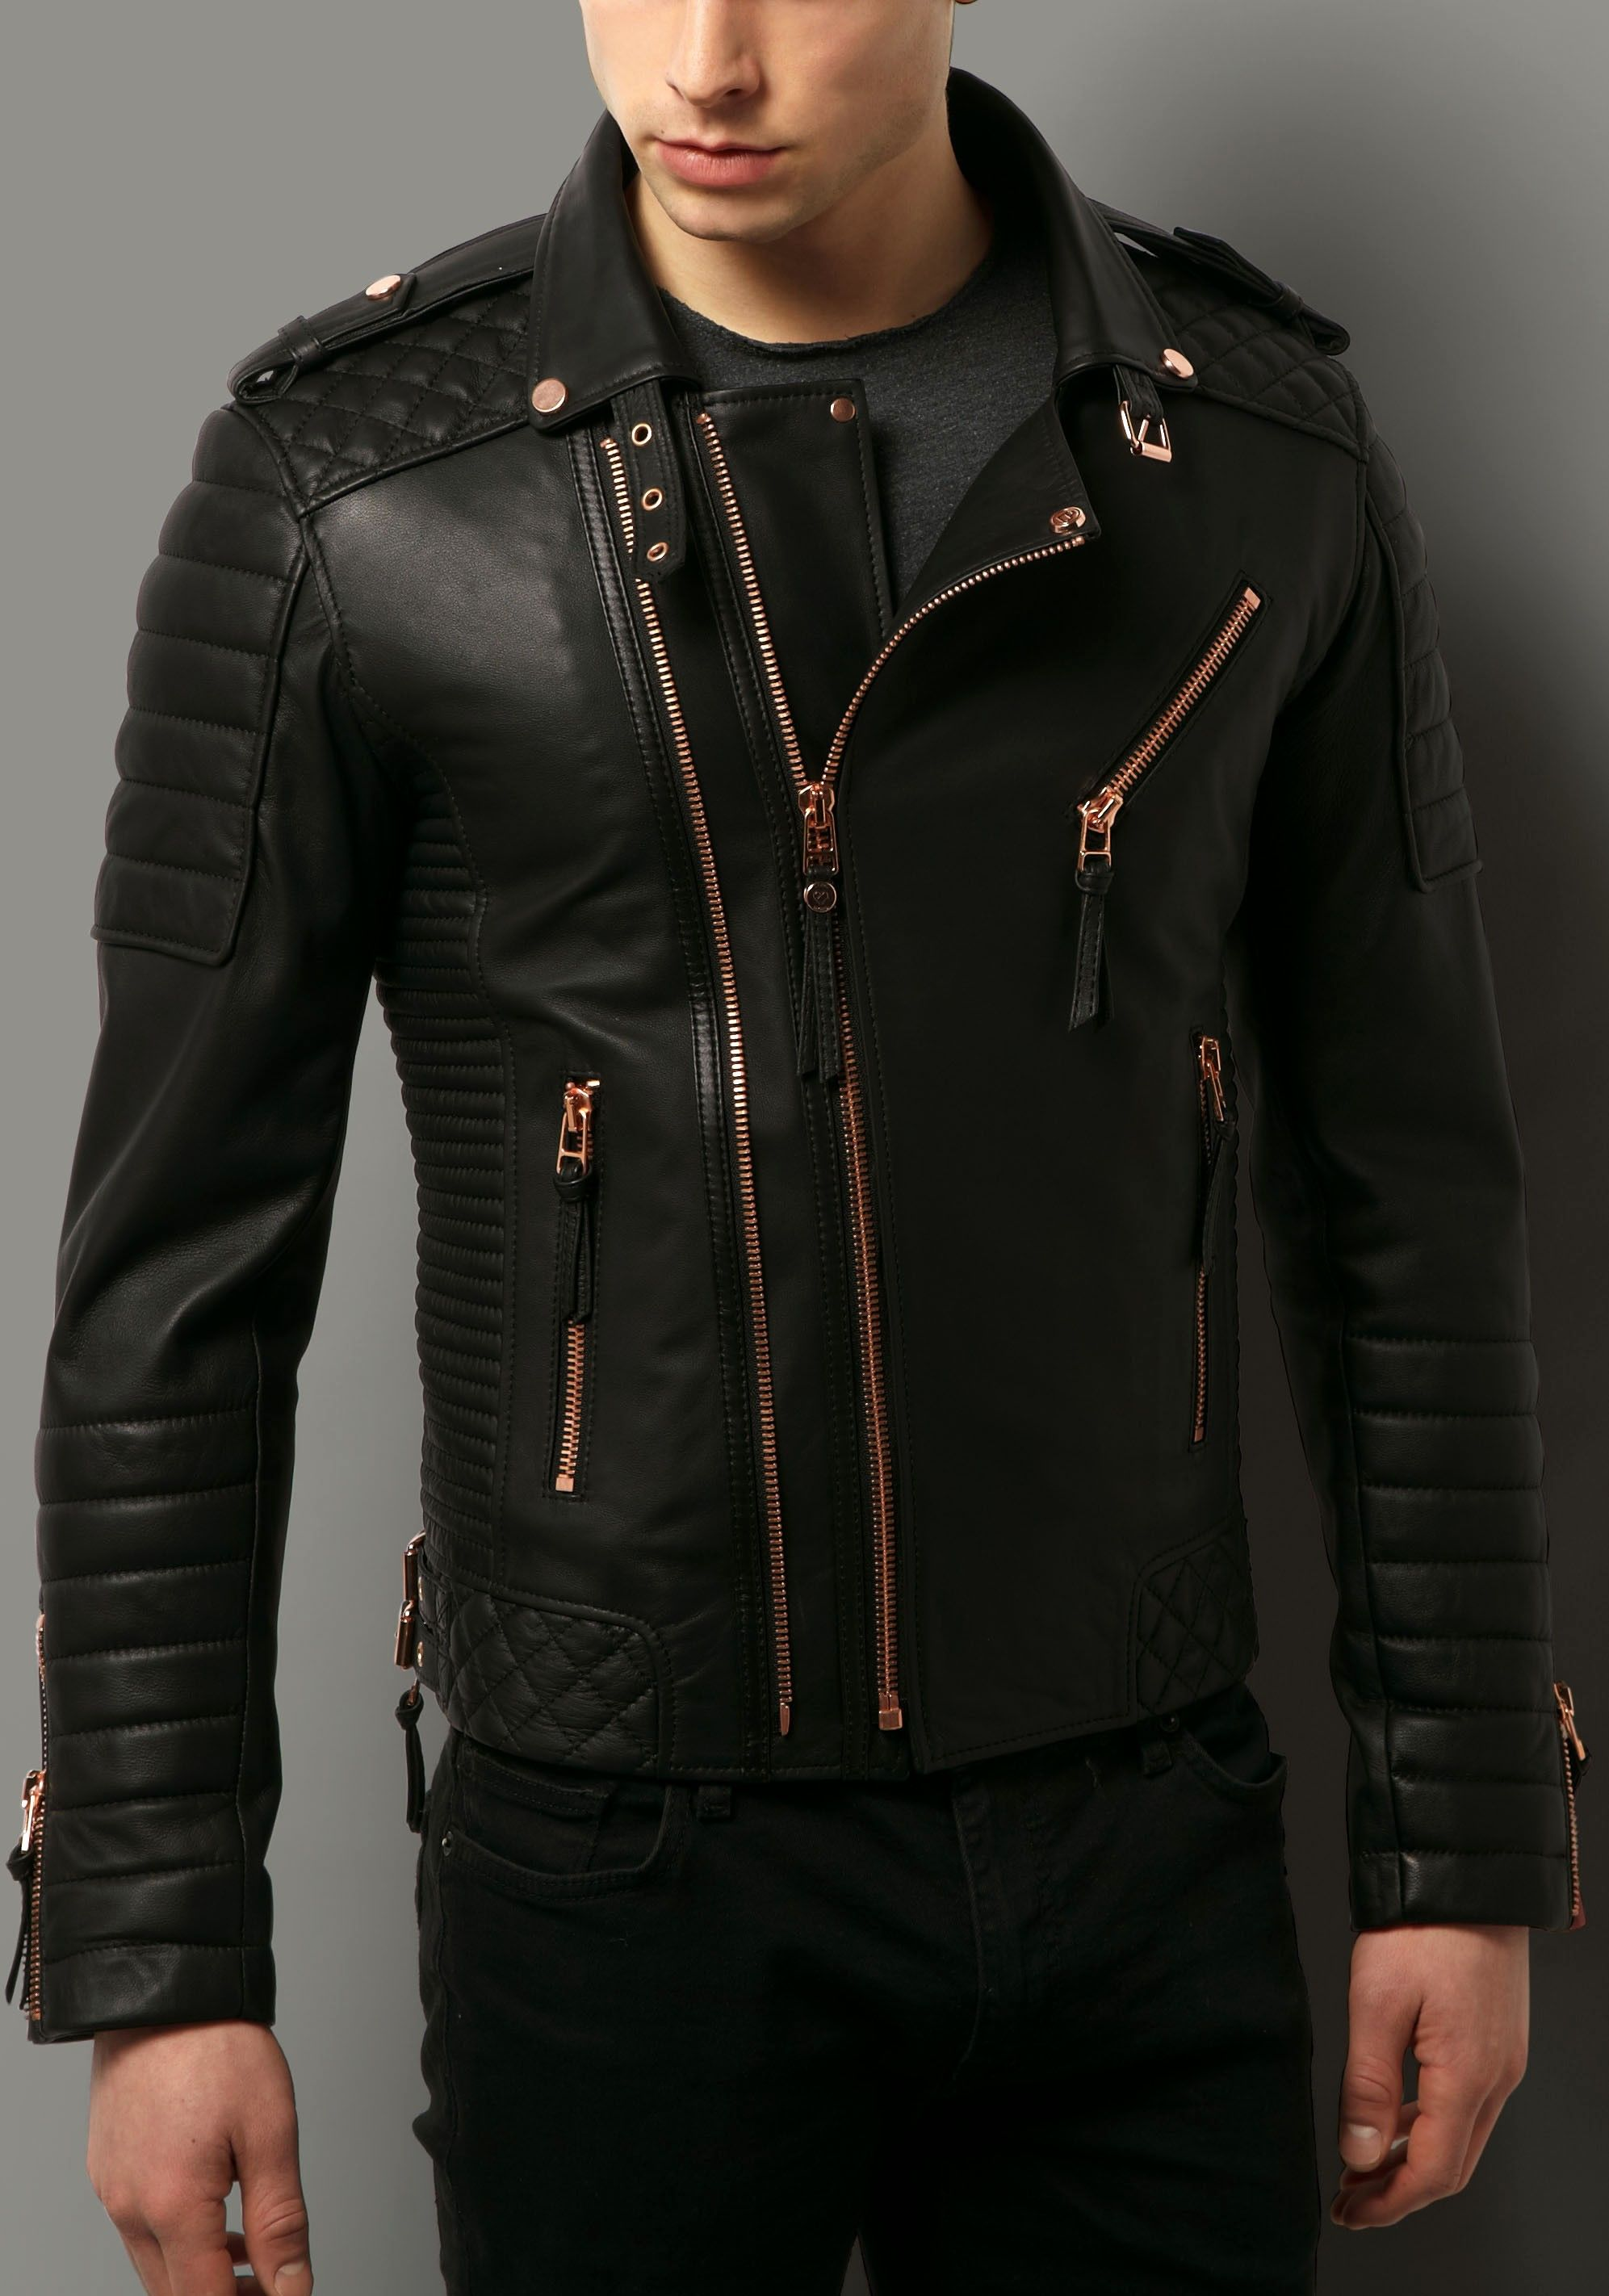 The 'Spier' Bomber V.2 (Platinum Hardware) - Jackets - Men - Boda ...